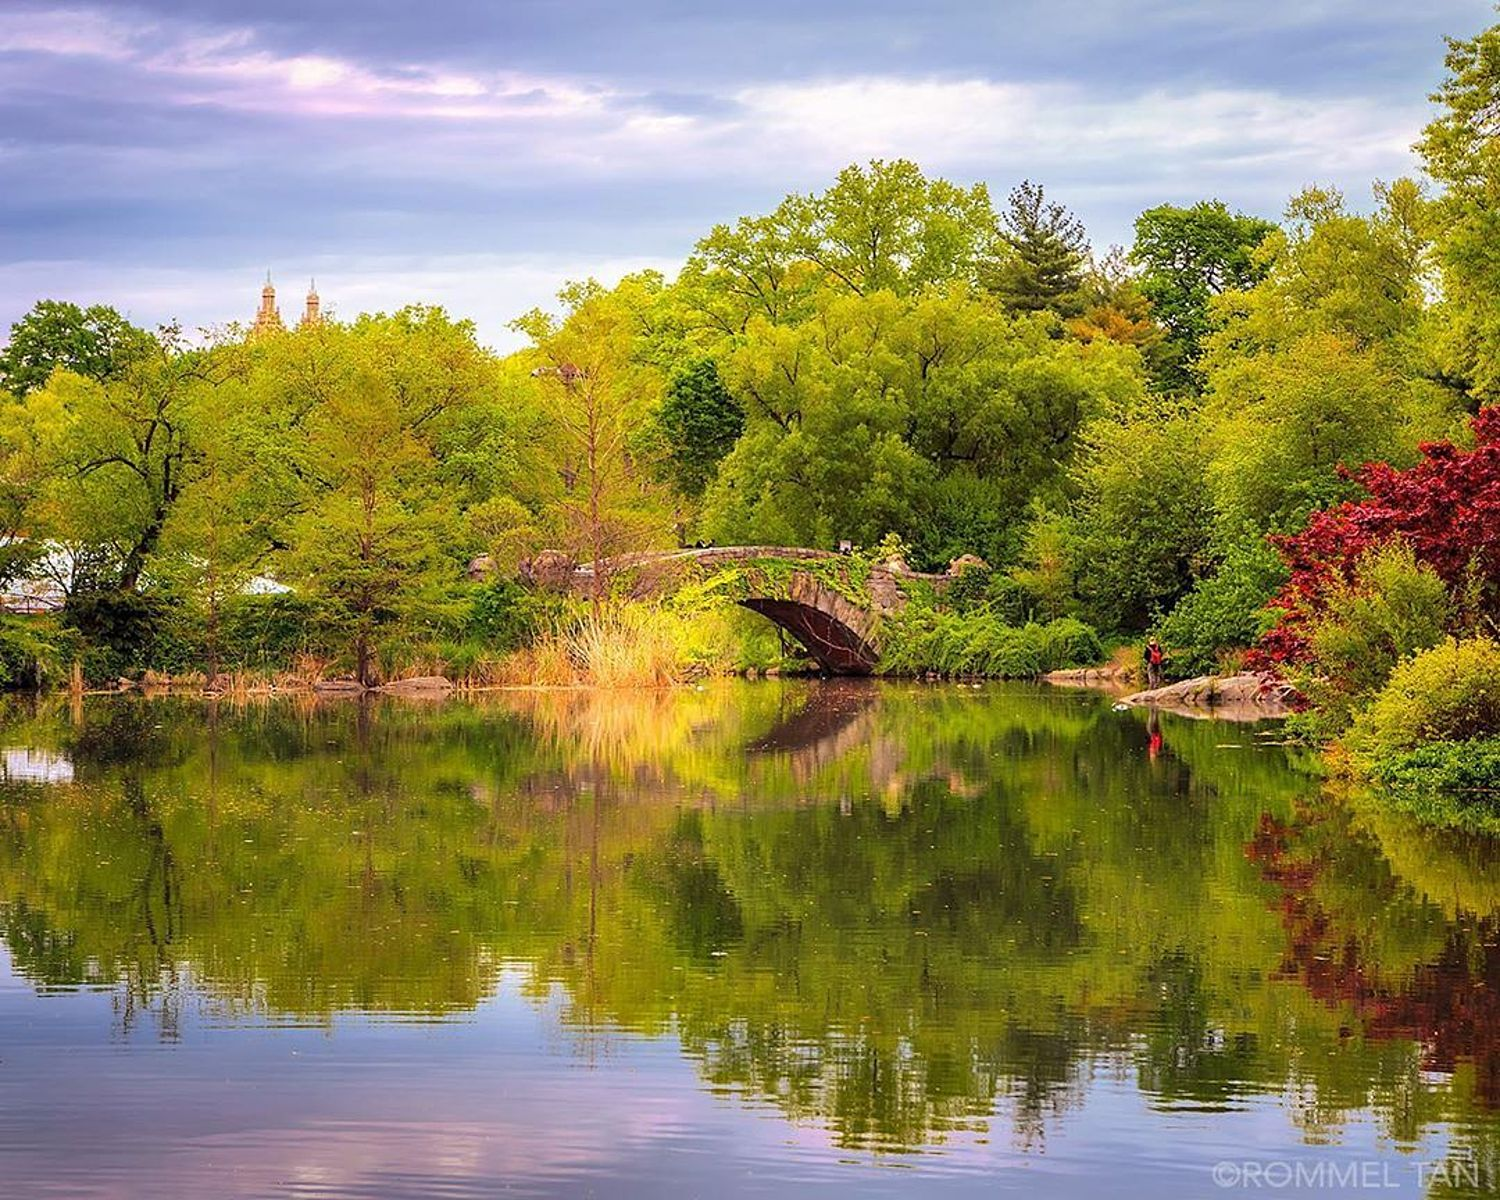 Gapstow Bridge at The Pond in Central Park, New York City